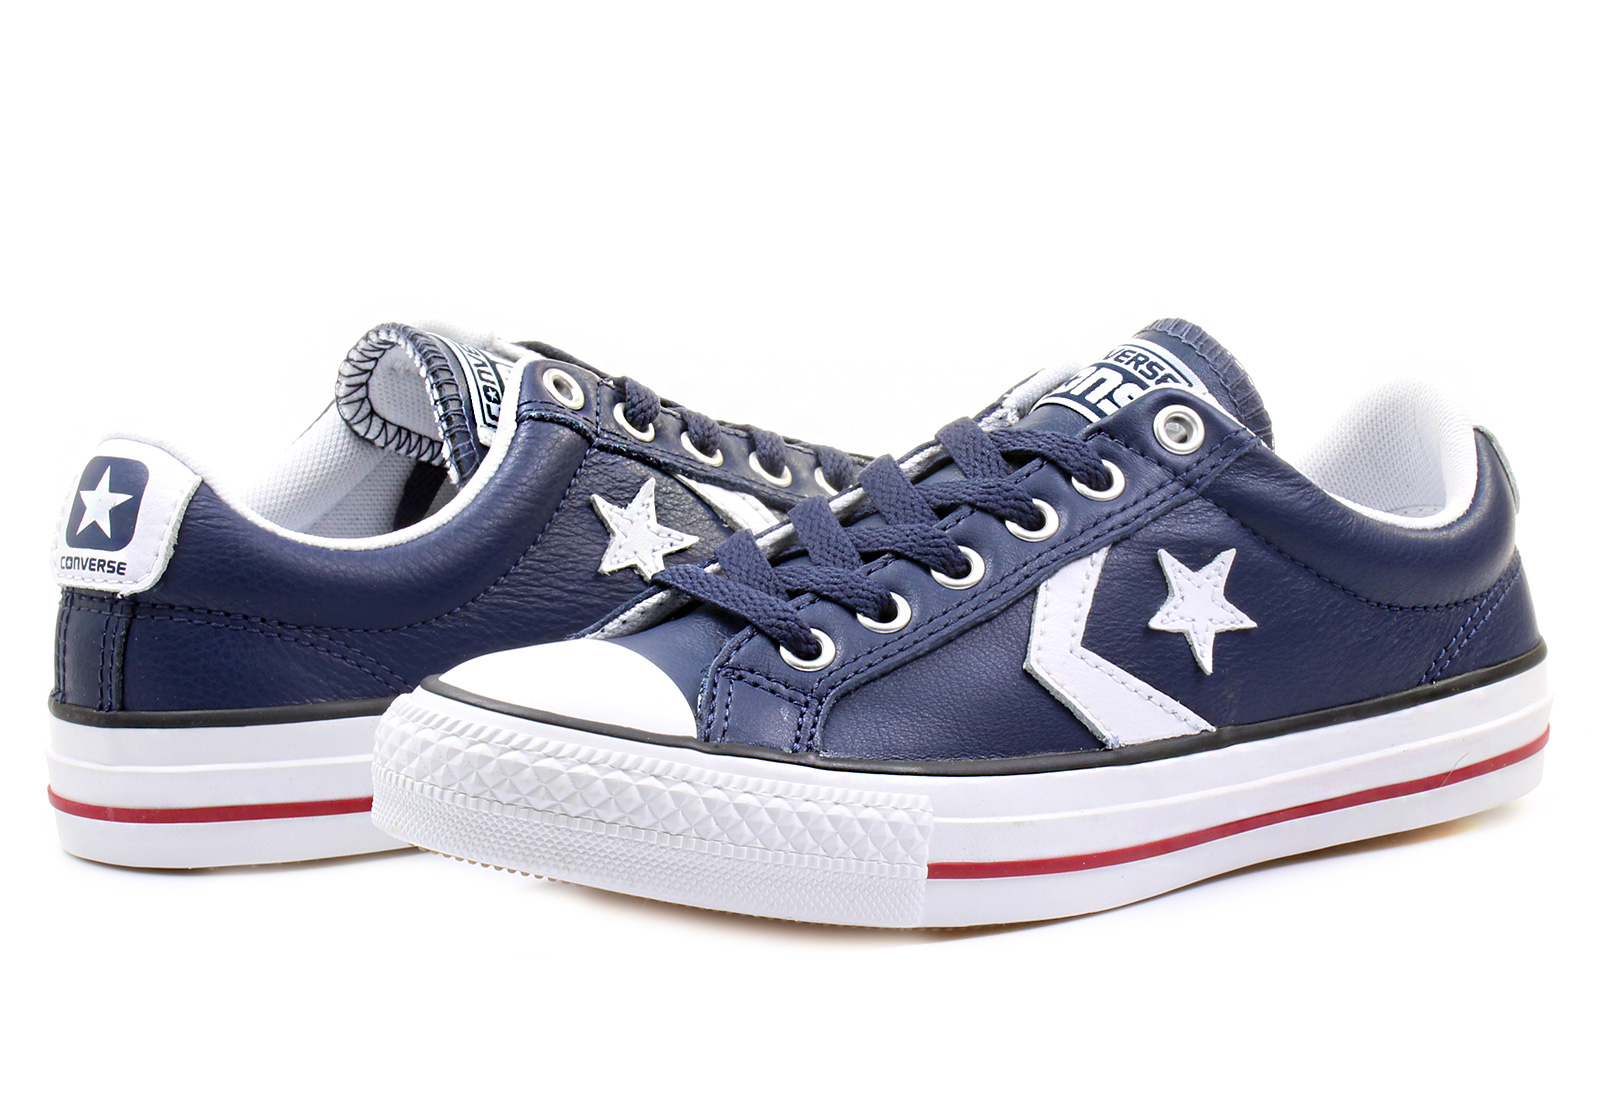 converse sneakers star player ev ox 140178c online shop for sneakers shoes and boots. Black Bedroom Furniture Sets. Home Design Ideas